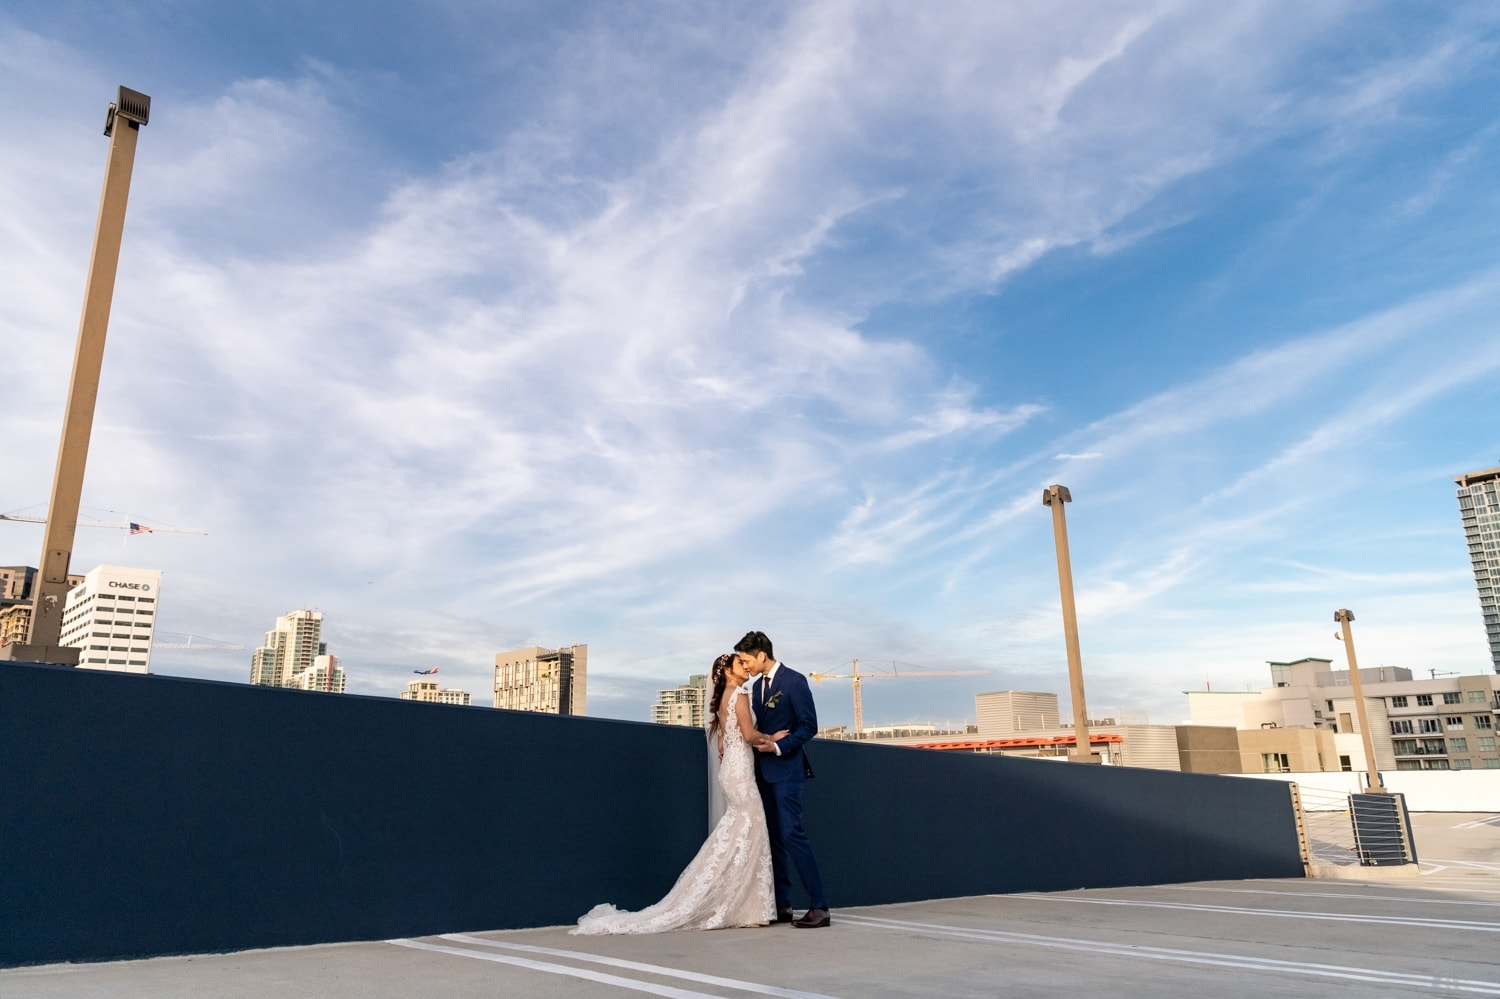 Bride and groom on a rooftop in San Diego.